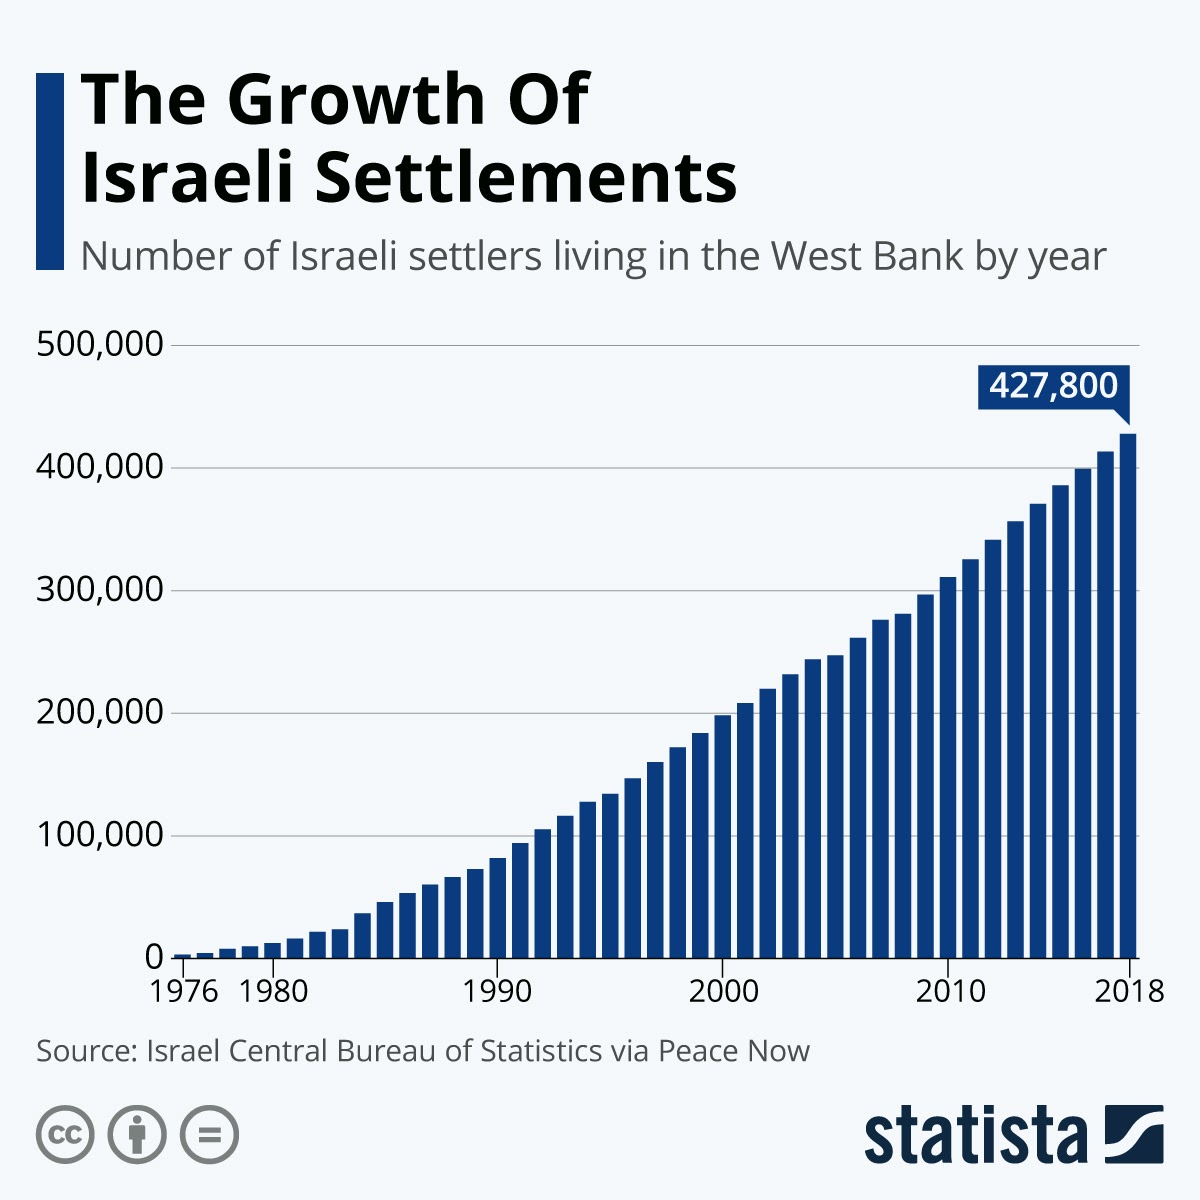 The Growth Of Israeli Settlements #infographic